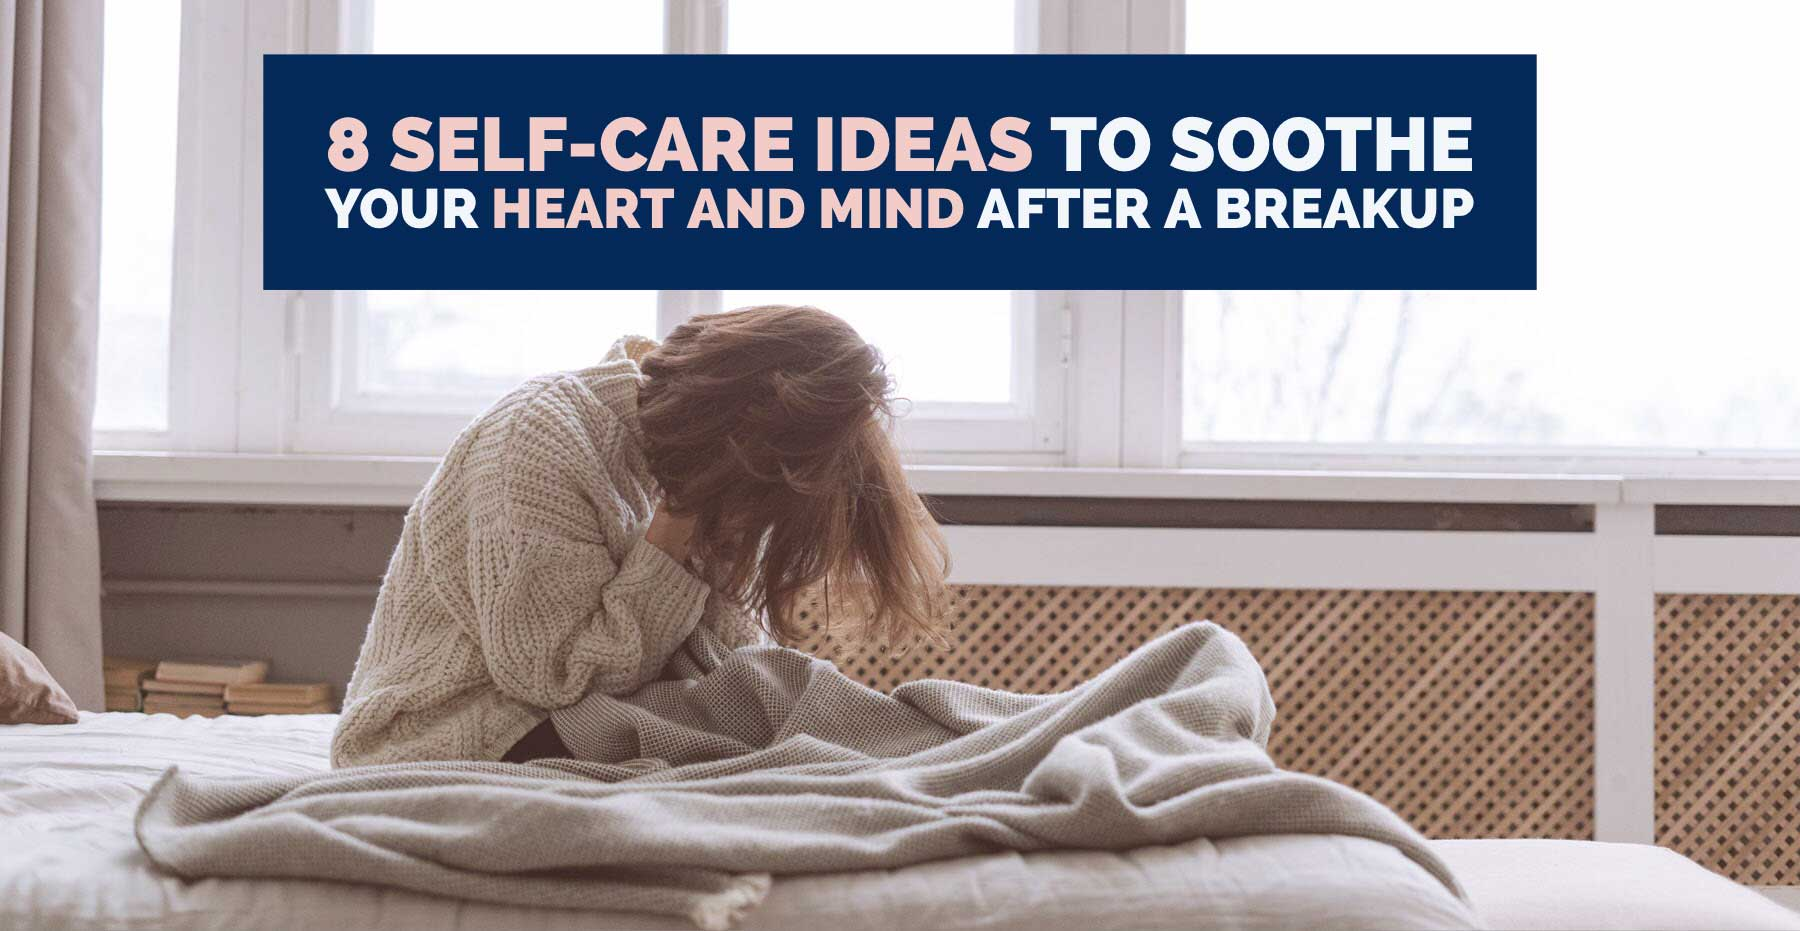 8-Self-Care-Ideas-to-Soothe-Your-Heart-and-Mind-After-a-Breakup-TheHopeLine